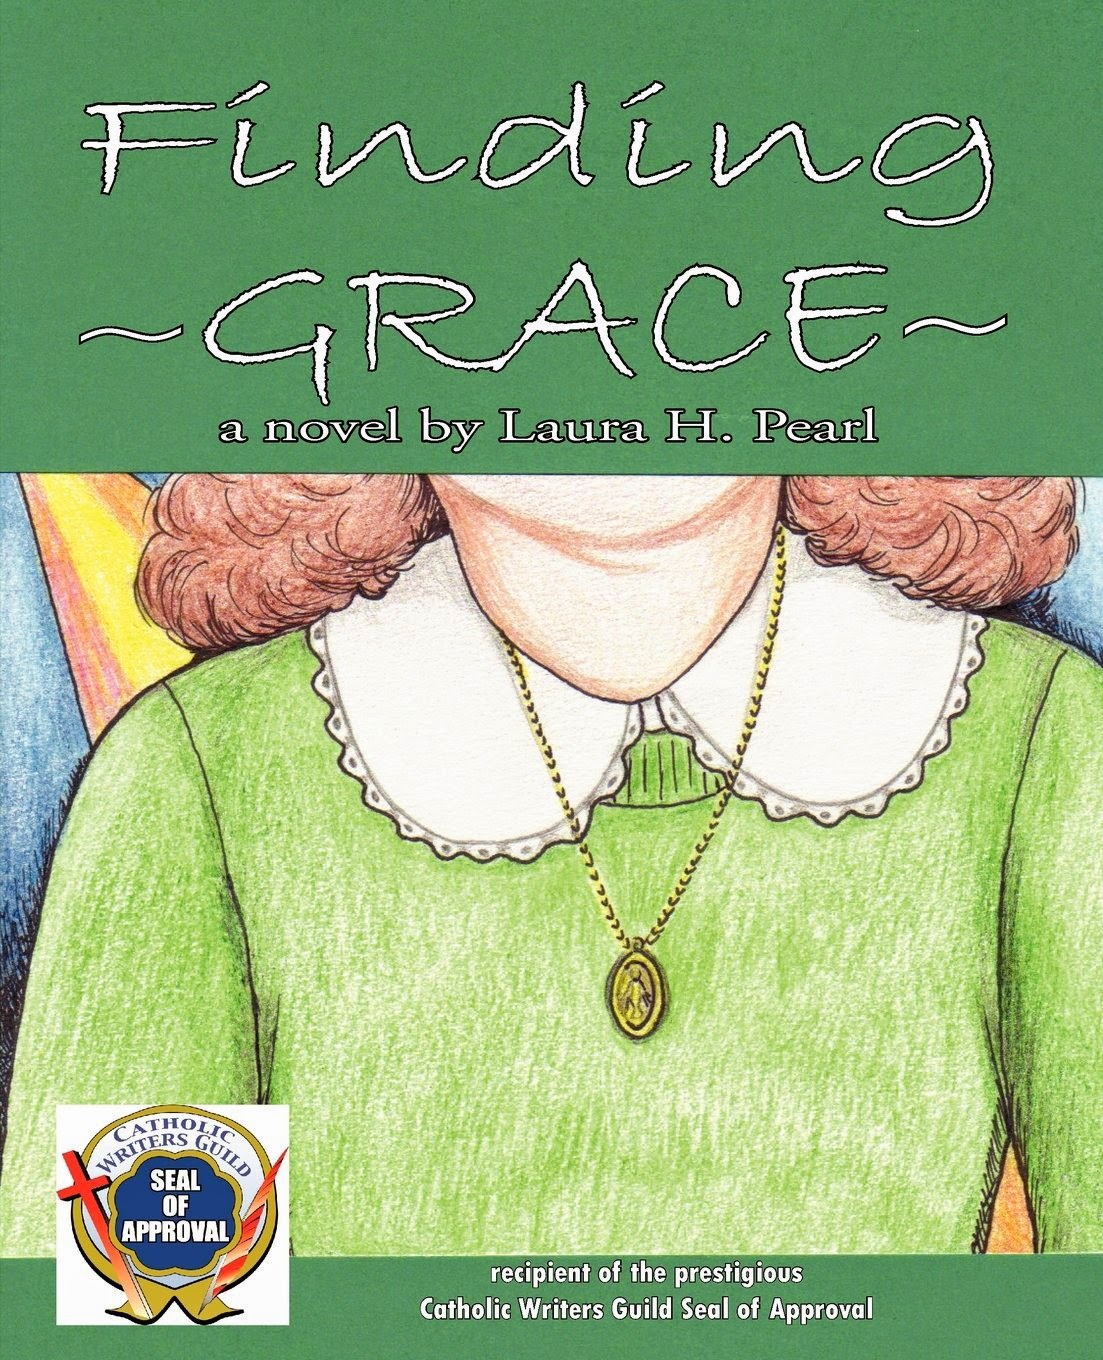 My 2012 debut novel, a recipient of the Catholic Writers Guild Seal of Approval